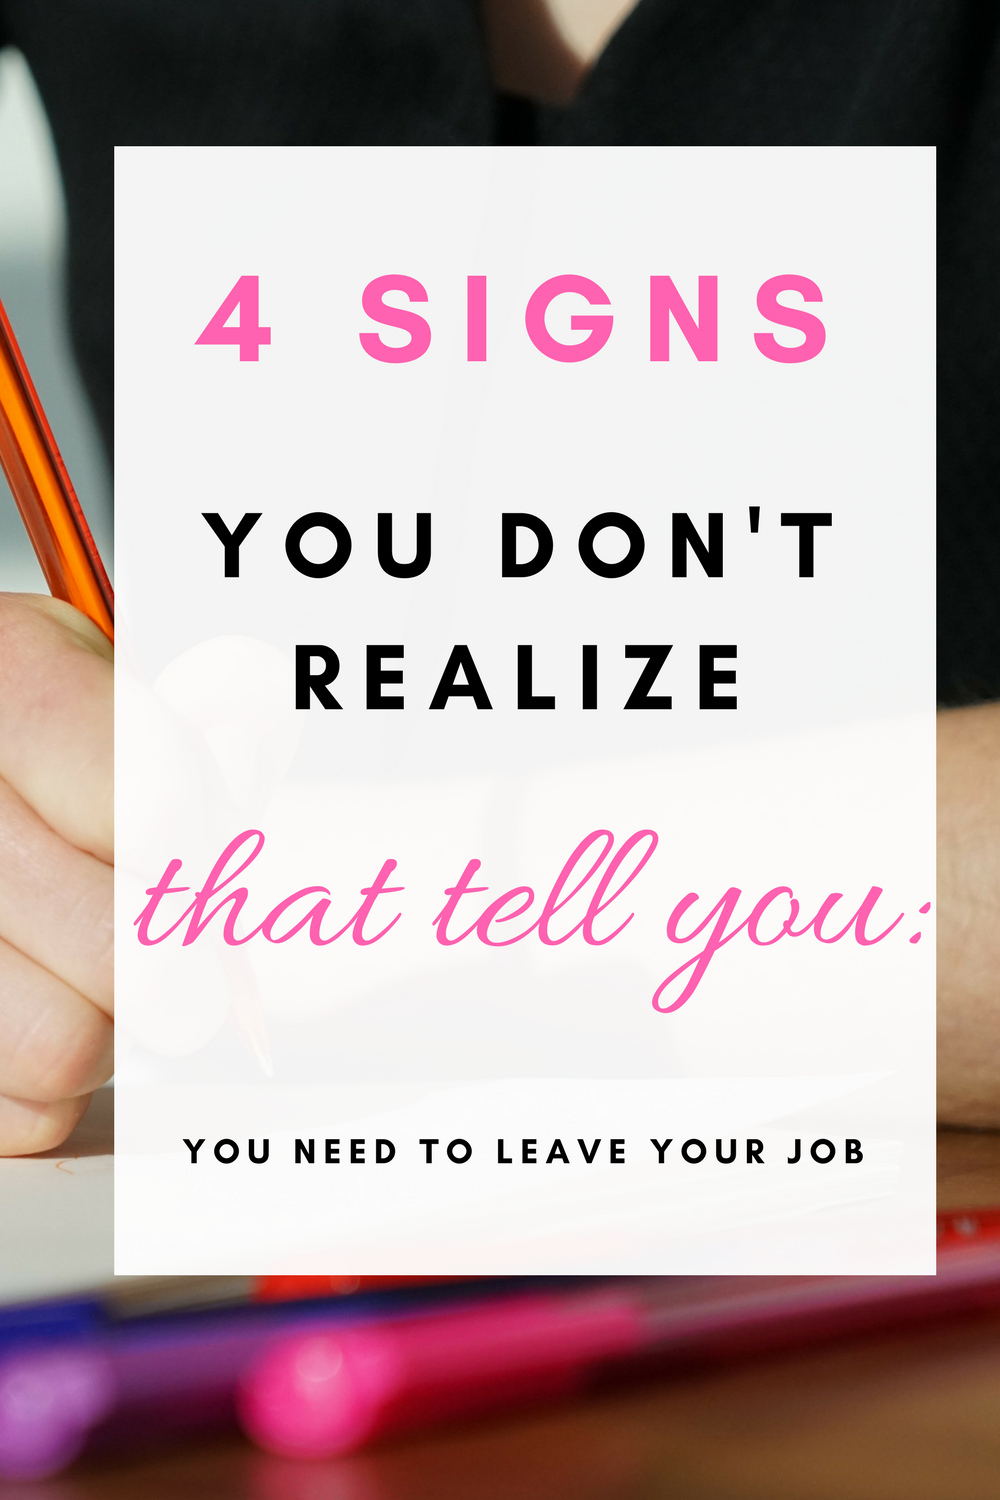 4 signs you need a new job